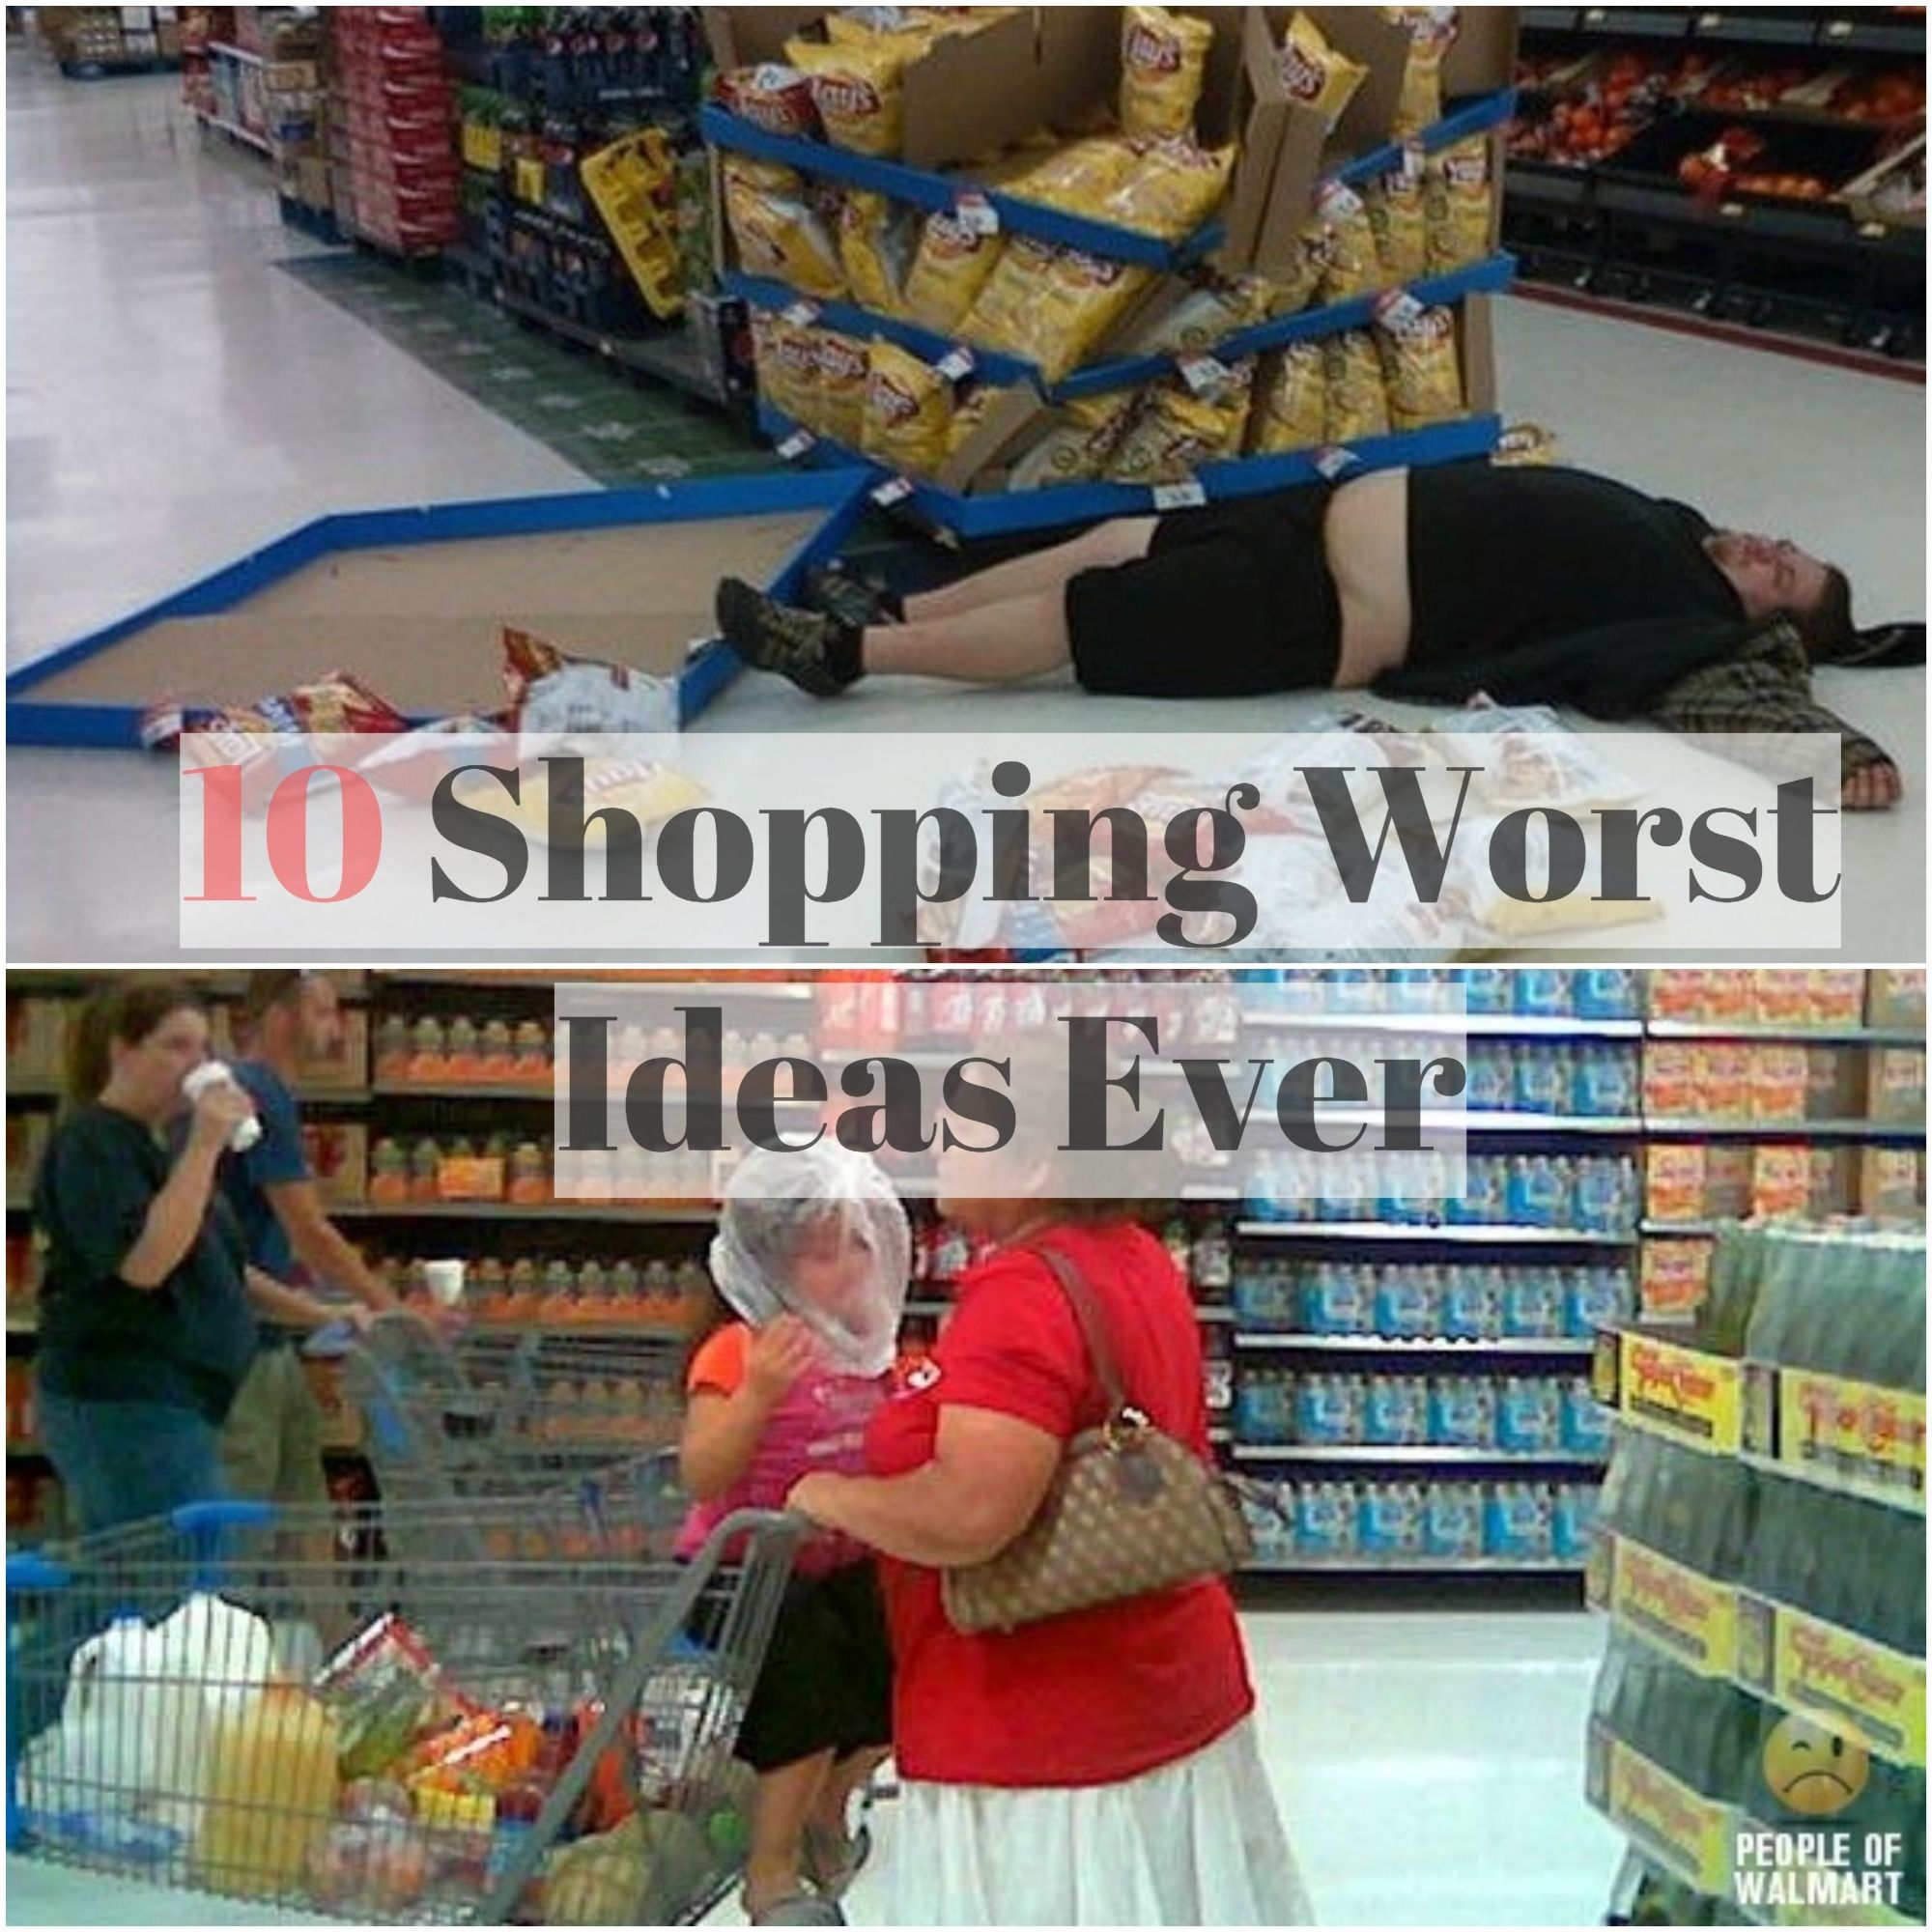 10 Shopping Worst Ideas Ever omg bizzarre weird Wtf